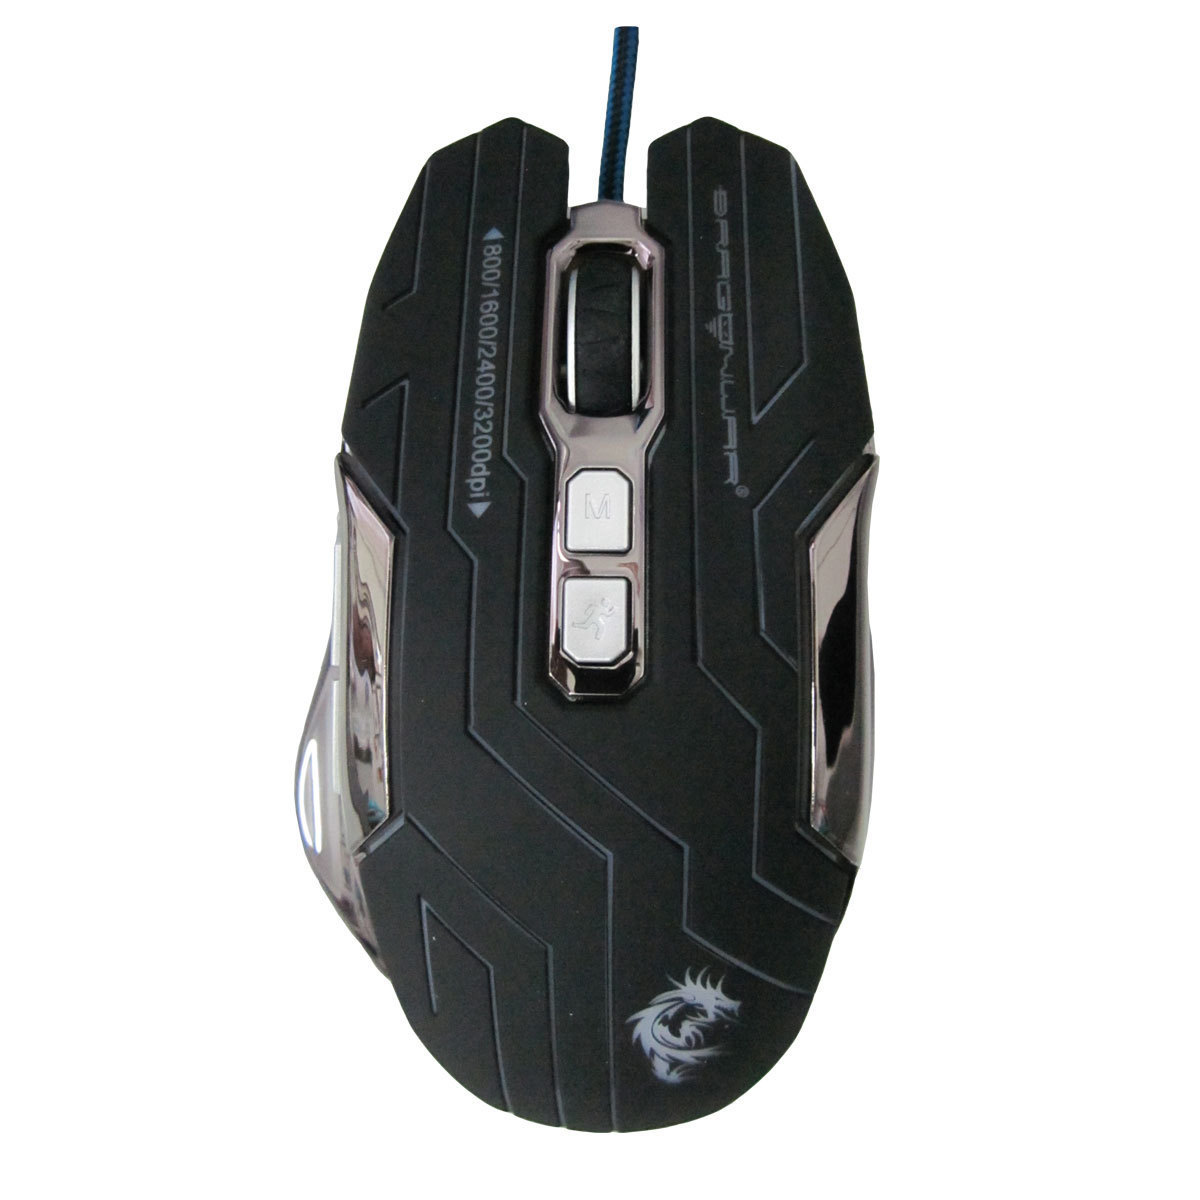 Beli Barang Dragonwar Reload Blue Sensor Gaming Mouse Online